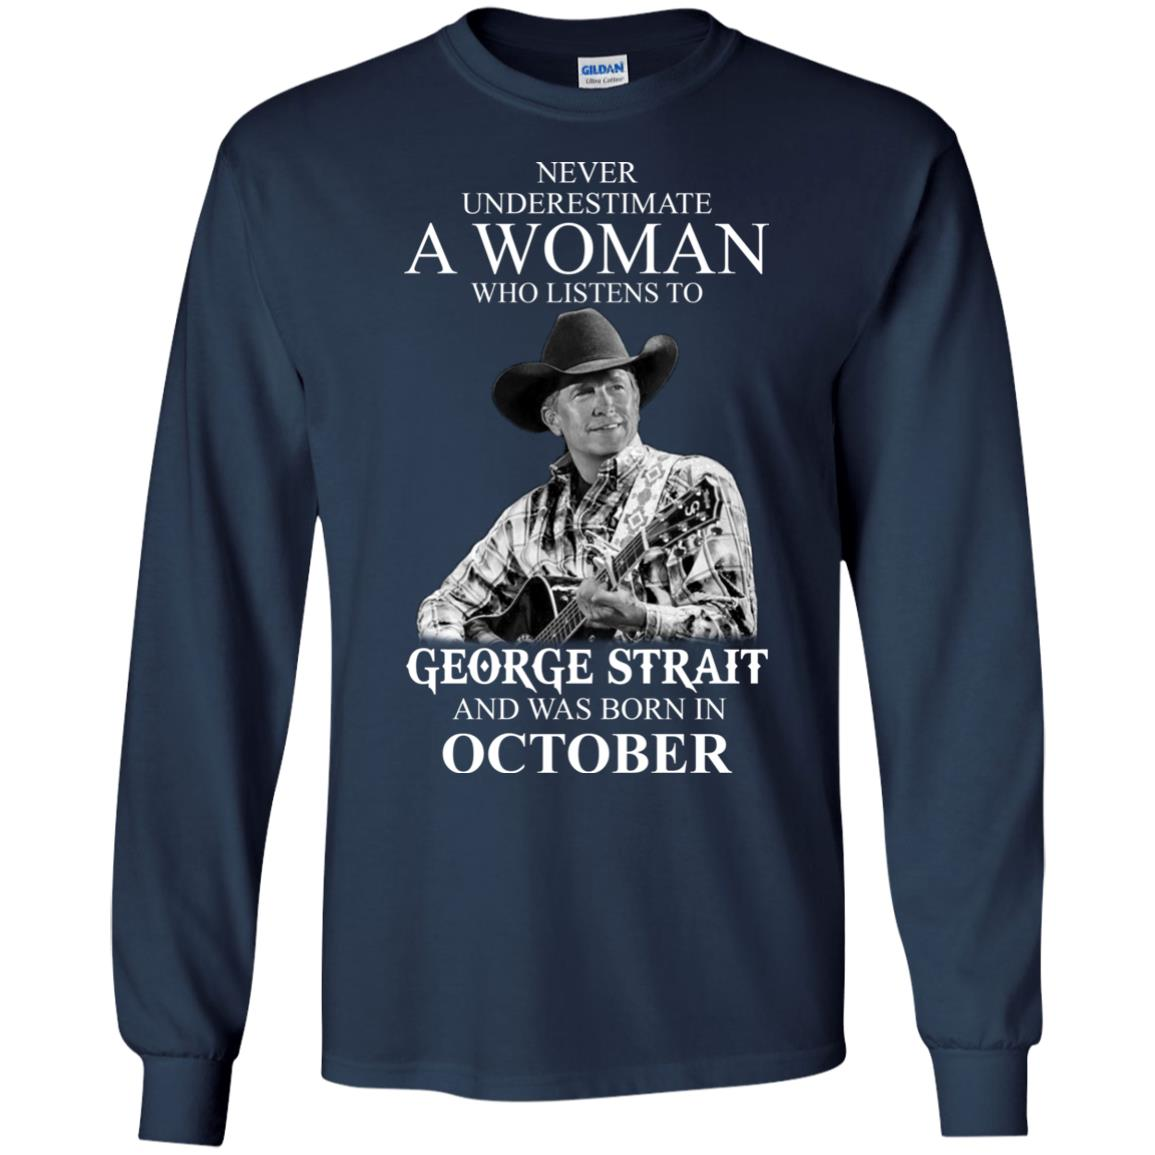 image 365 - Never Underestimate A Woman Who Listens To George Strait And Was Born In October shirt